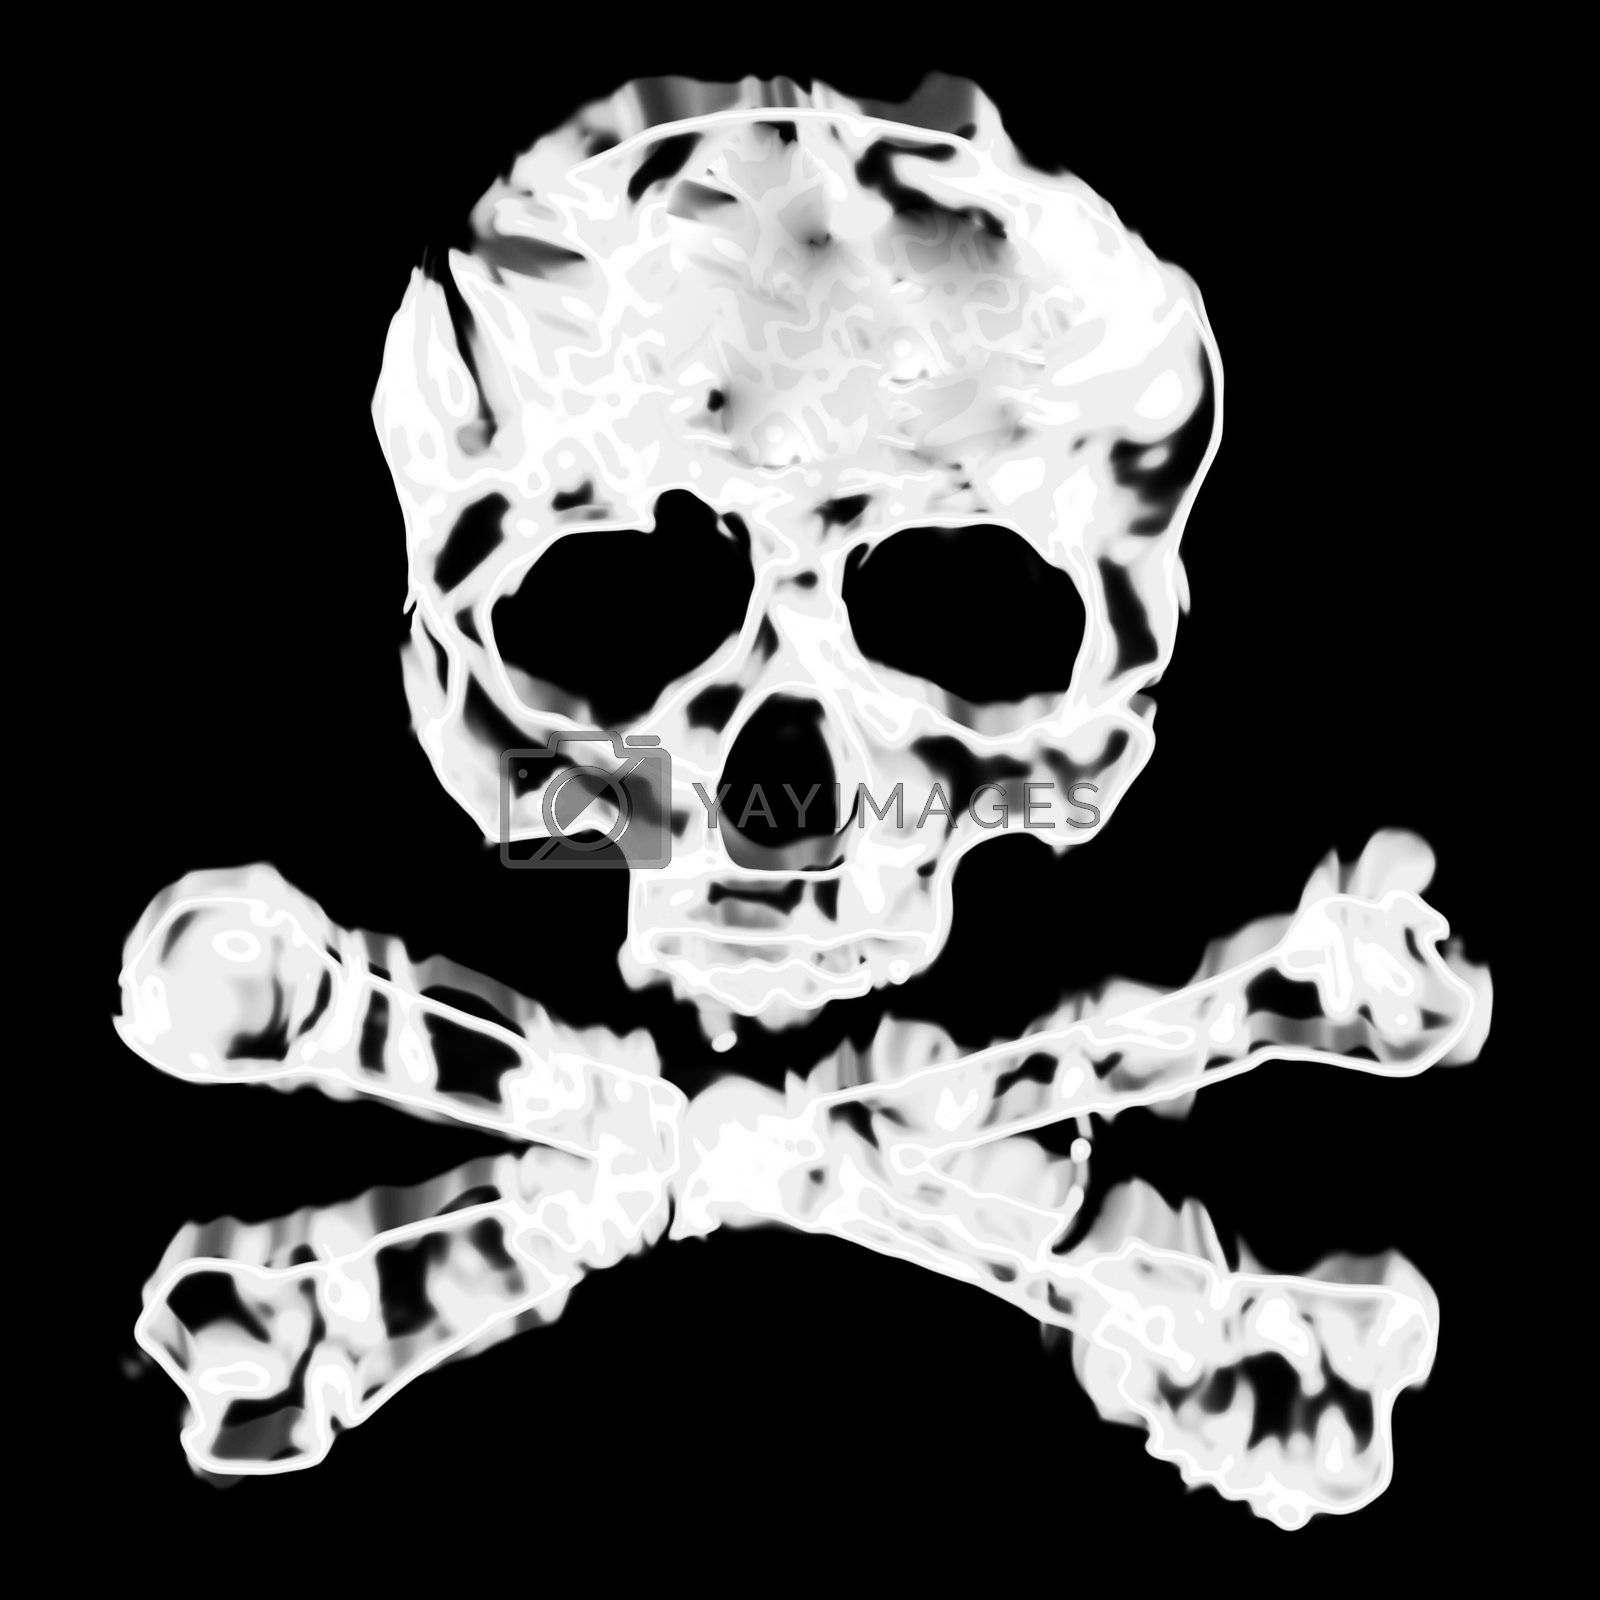 Skull and cross bones illustration isolated over a black background.